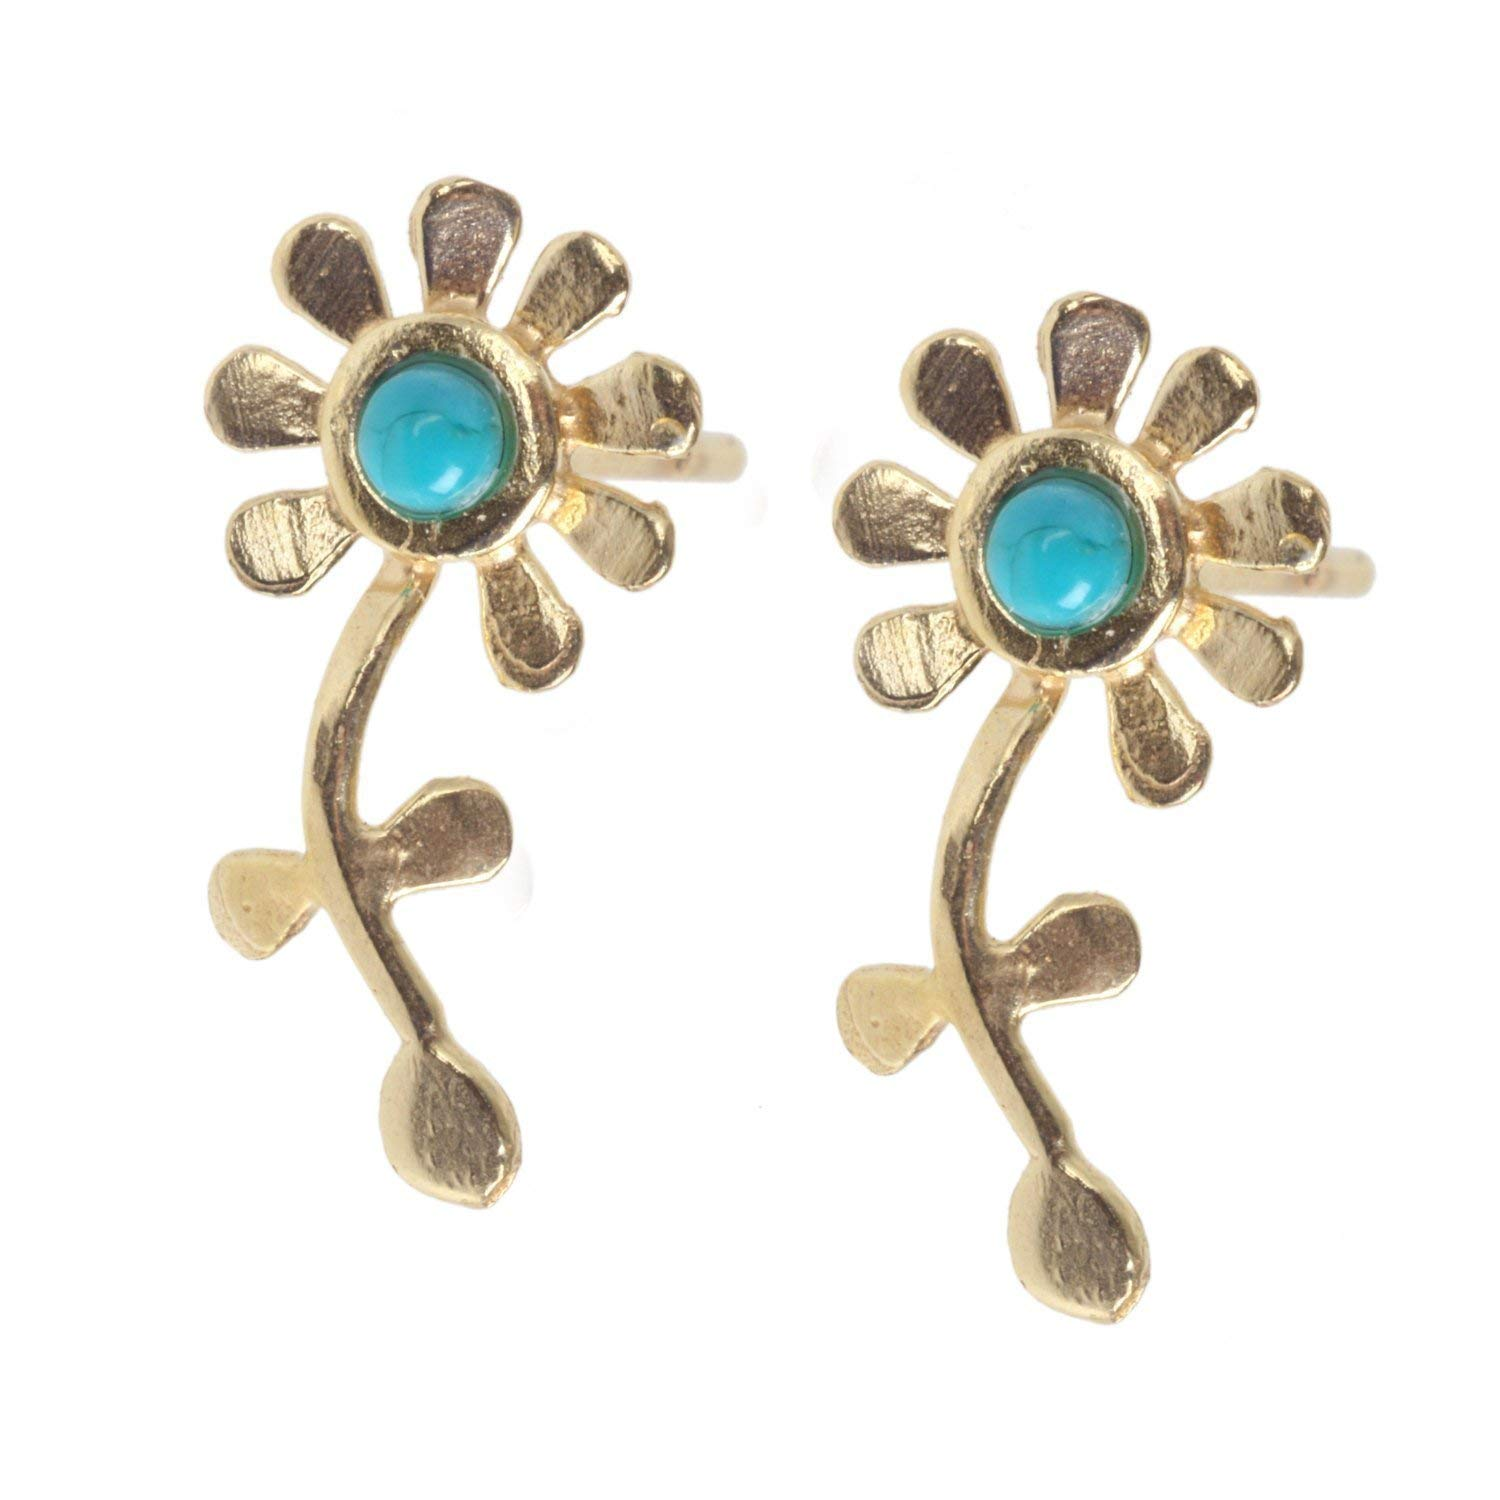 Flower Ear Cuff, Handmade Ear Sweep Stud Earring inlaid with Colorful Gemstone, Available in 14K Gold Plated Brass or Sterling Silver